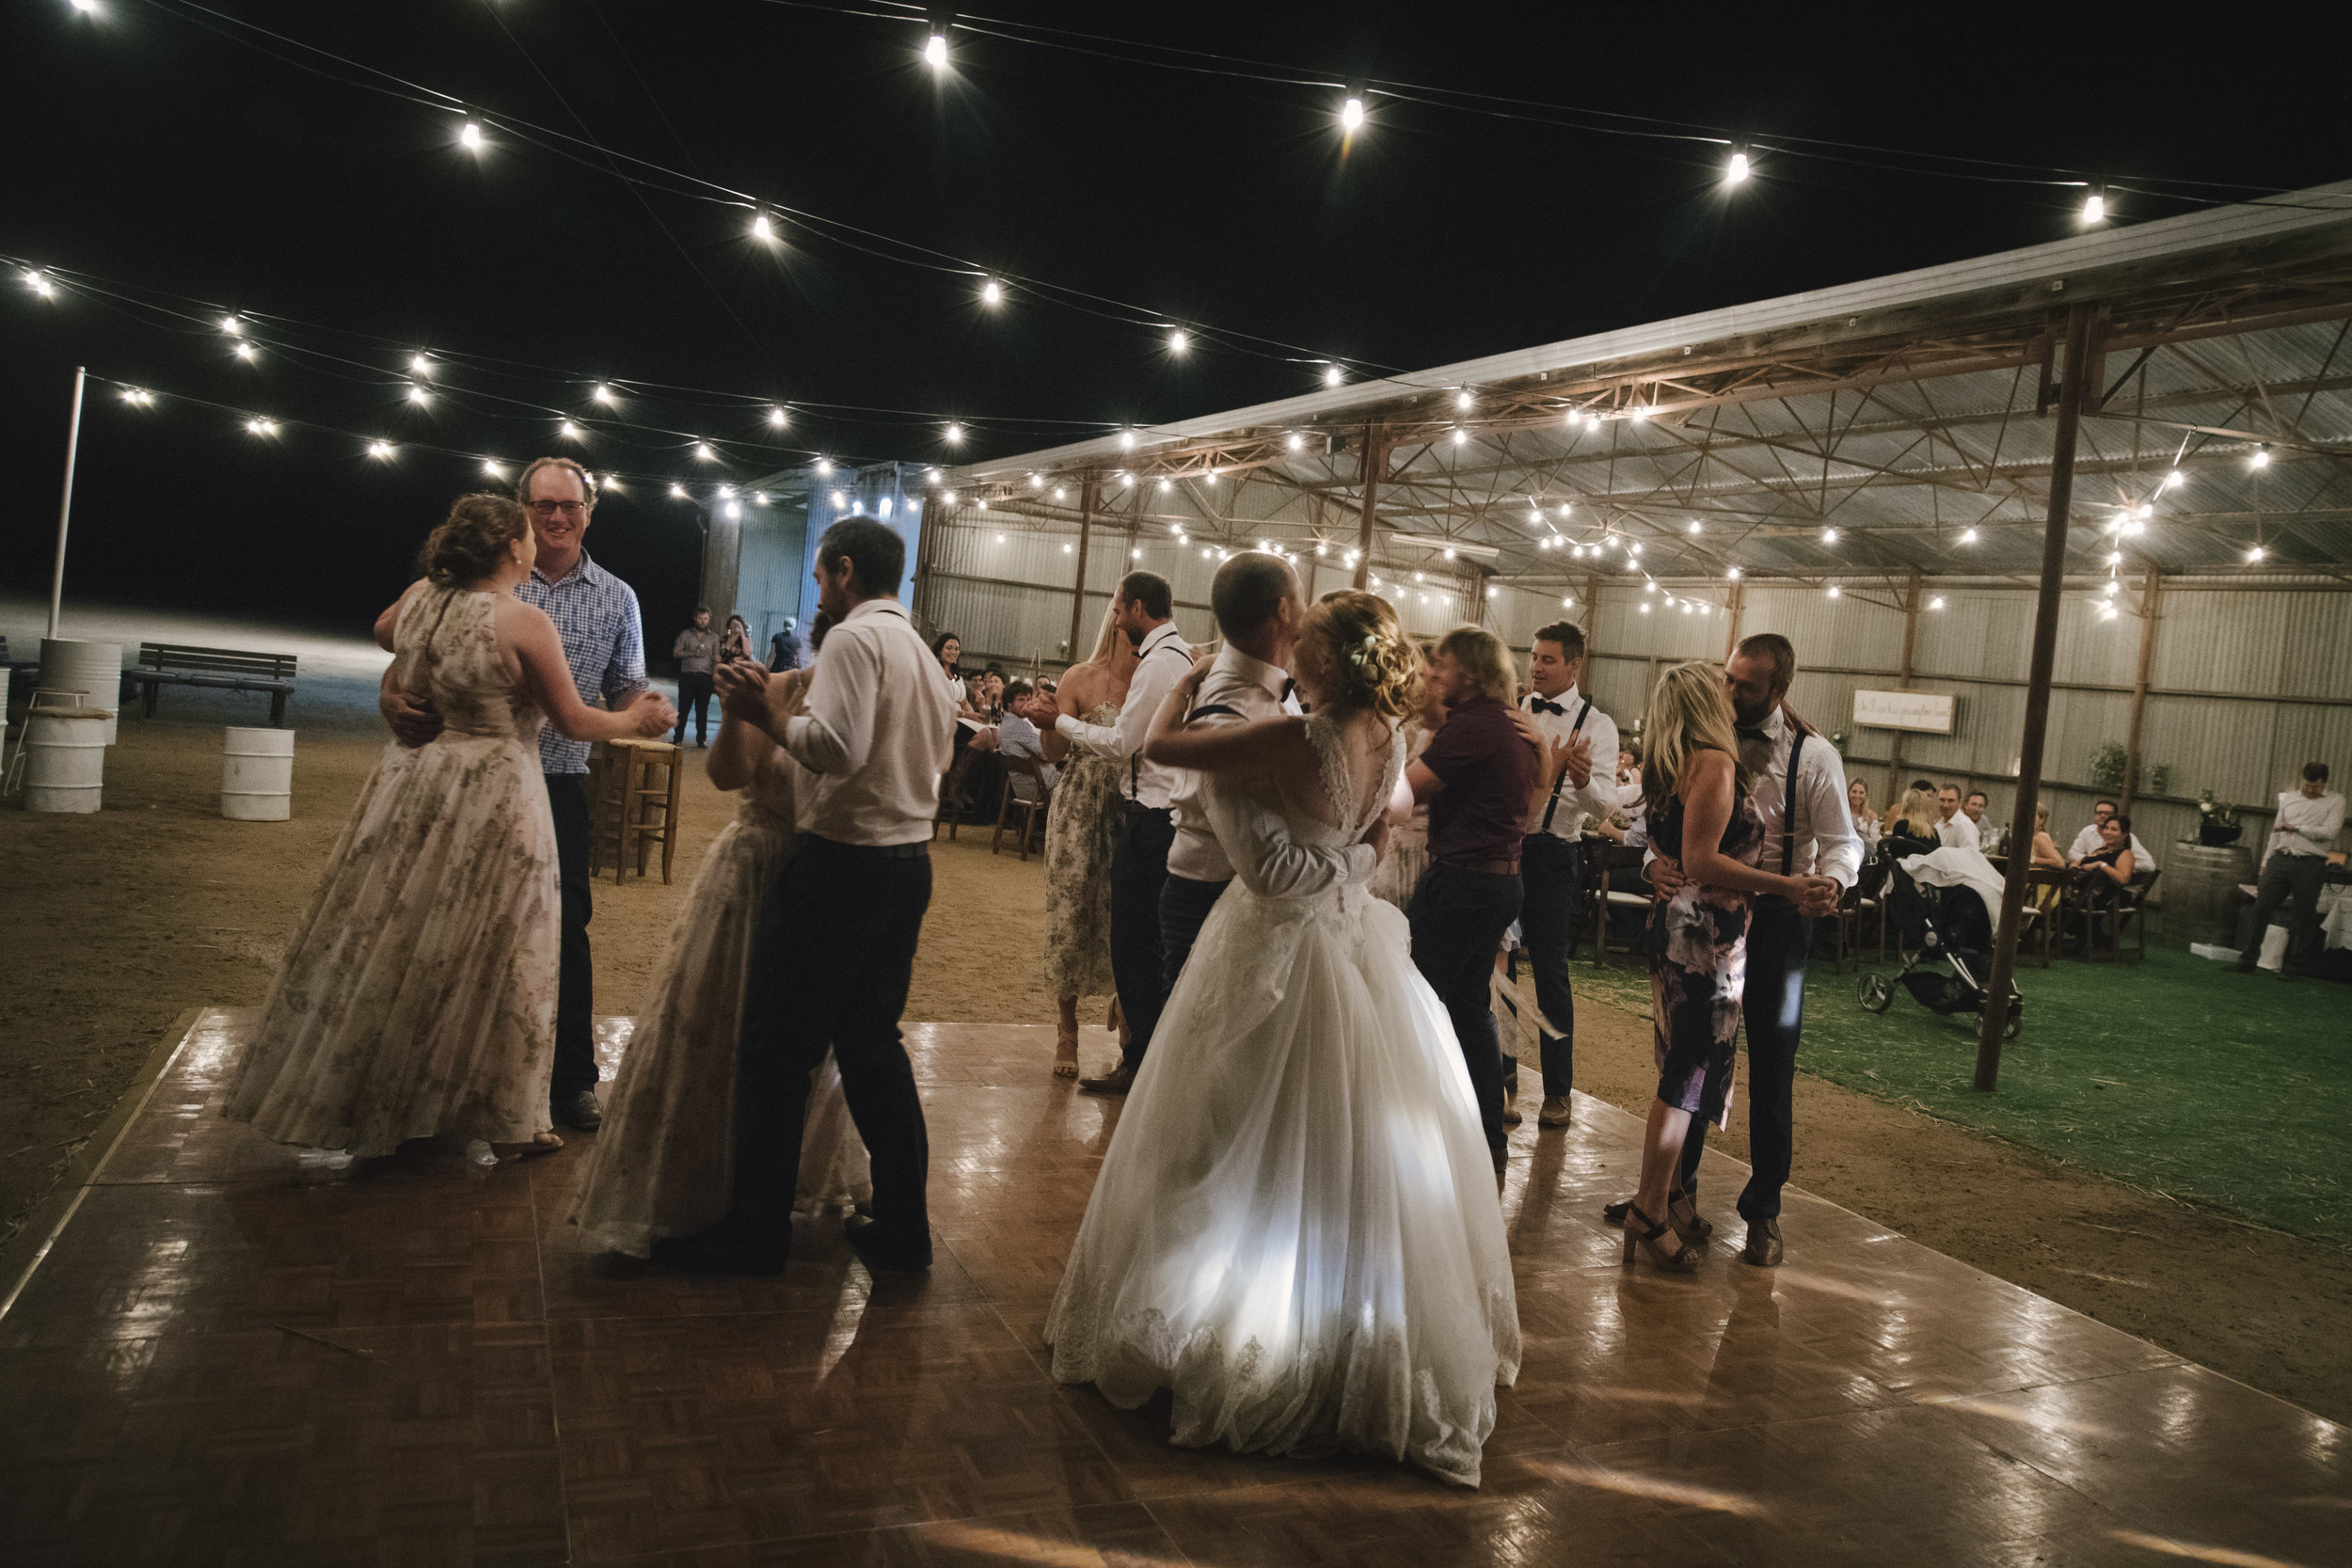 Wheatbelt Merredin Rustic Rural Farm Wedding (80).jpg